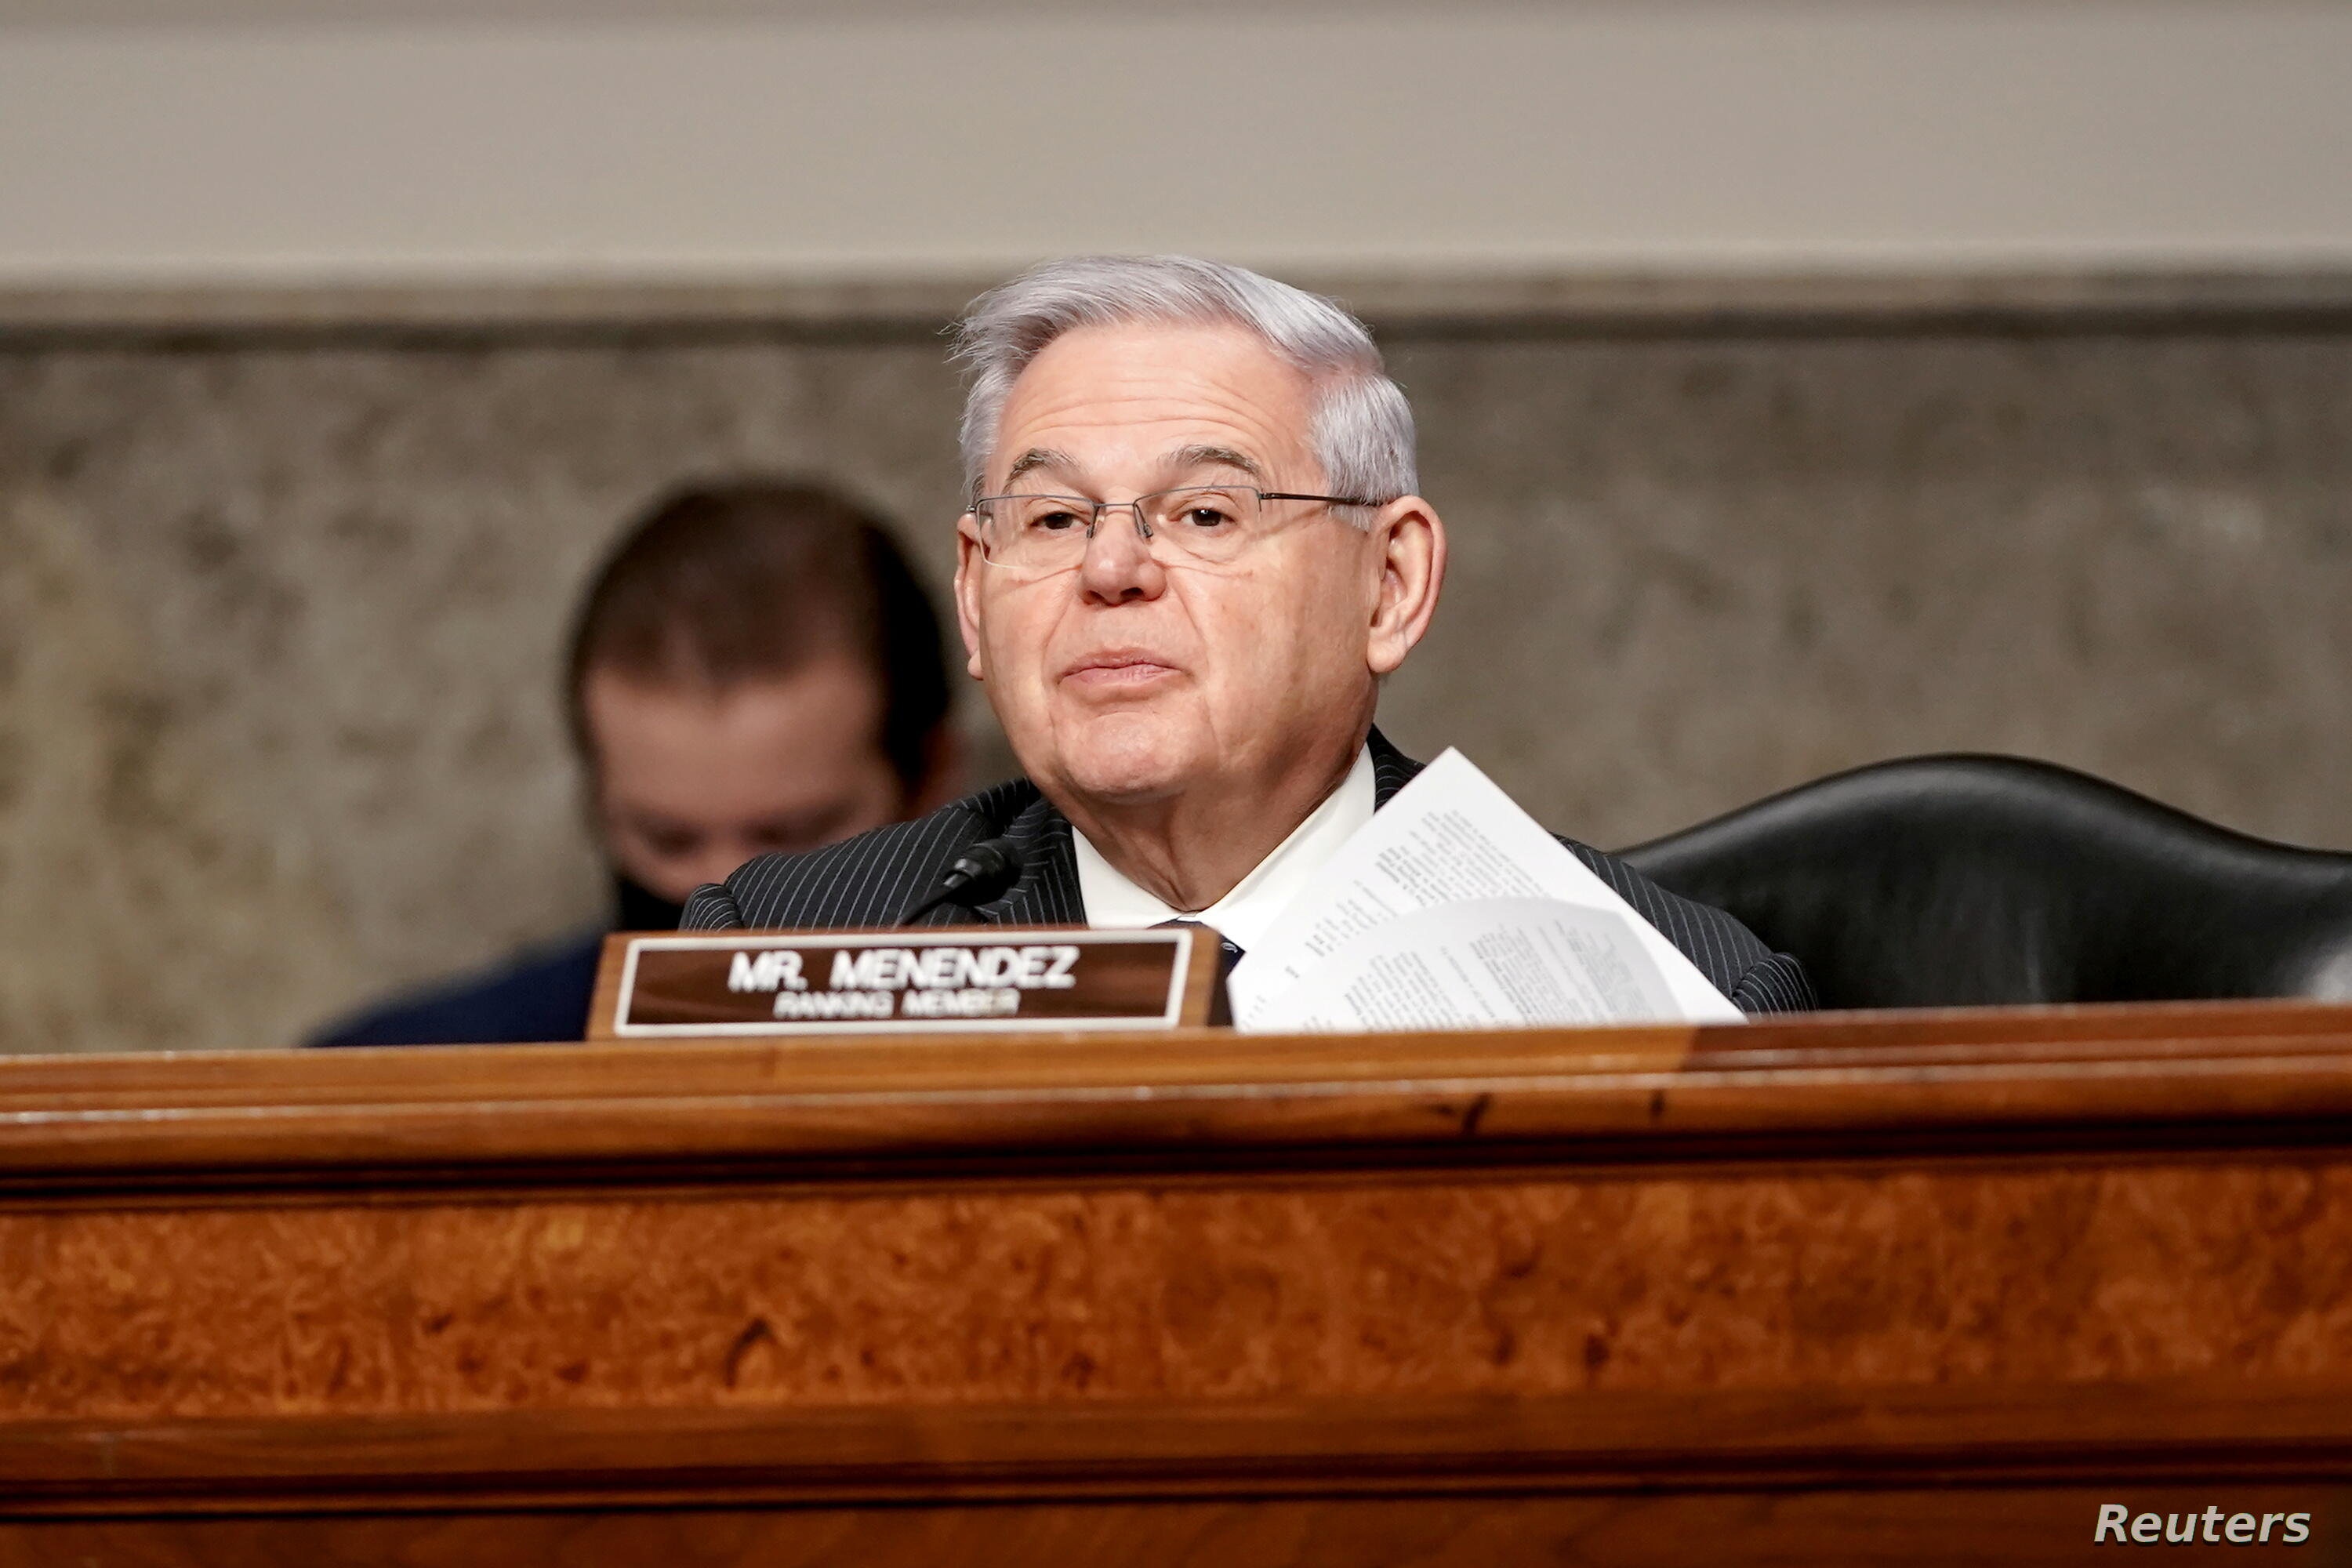 U.S. Senator Robert Menendez (D-NJ) speaks during the Senate Foreign Relations Committee hearing on the nomination of Linda Thomas-Greenfield to be the United States Ambassador to the United Nations, on Capitol Hill in Washington, D.C., U.S., January 27, 2021. Greg Nash/Pool via REUTERS